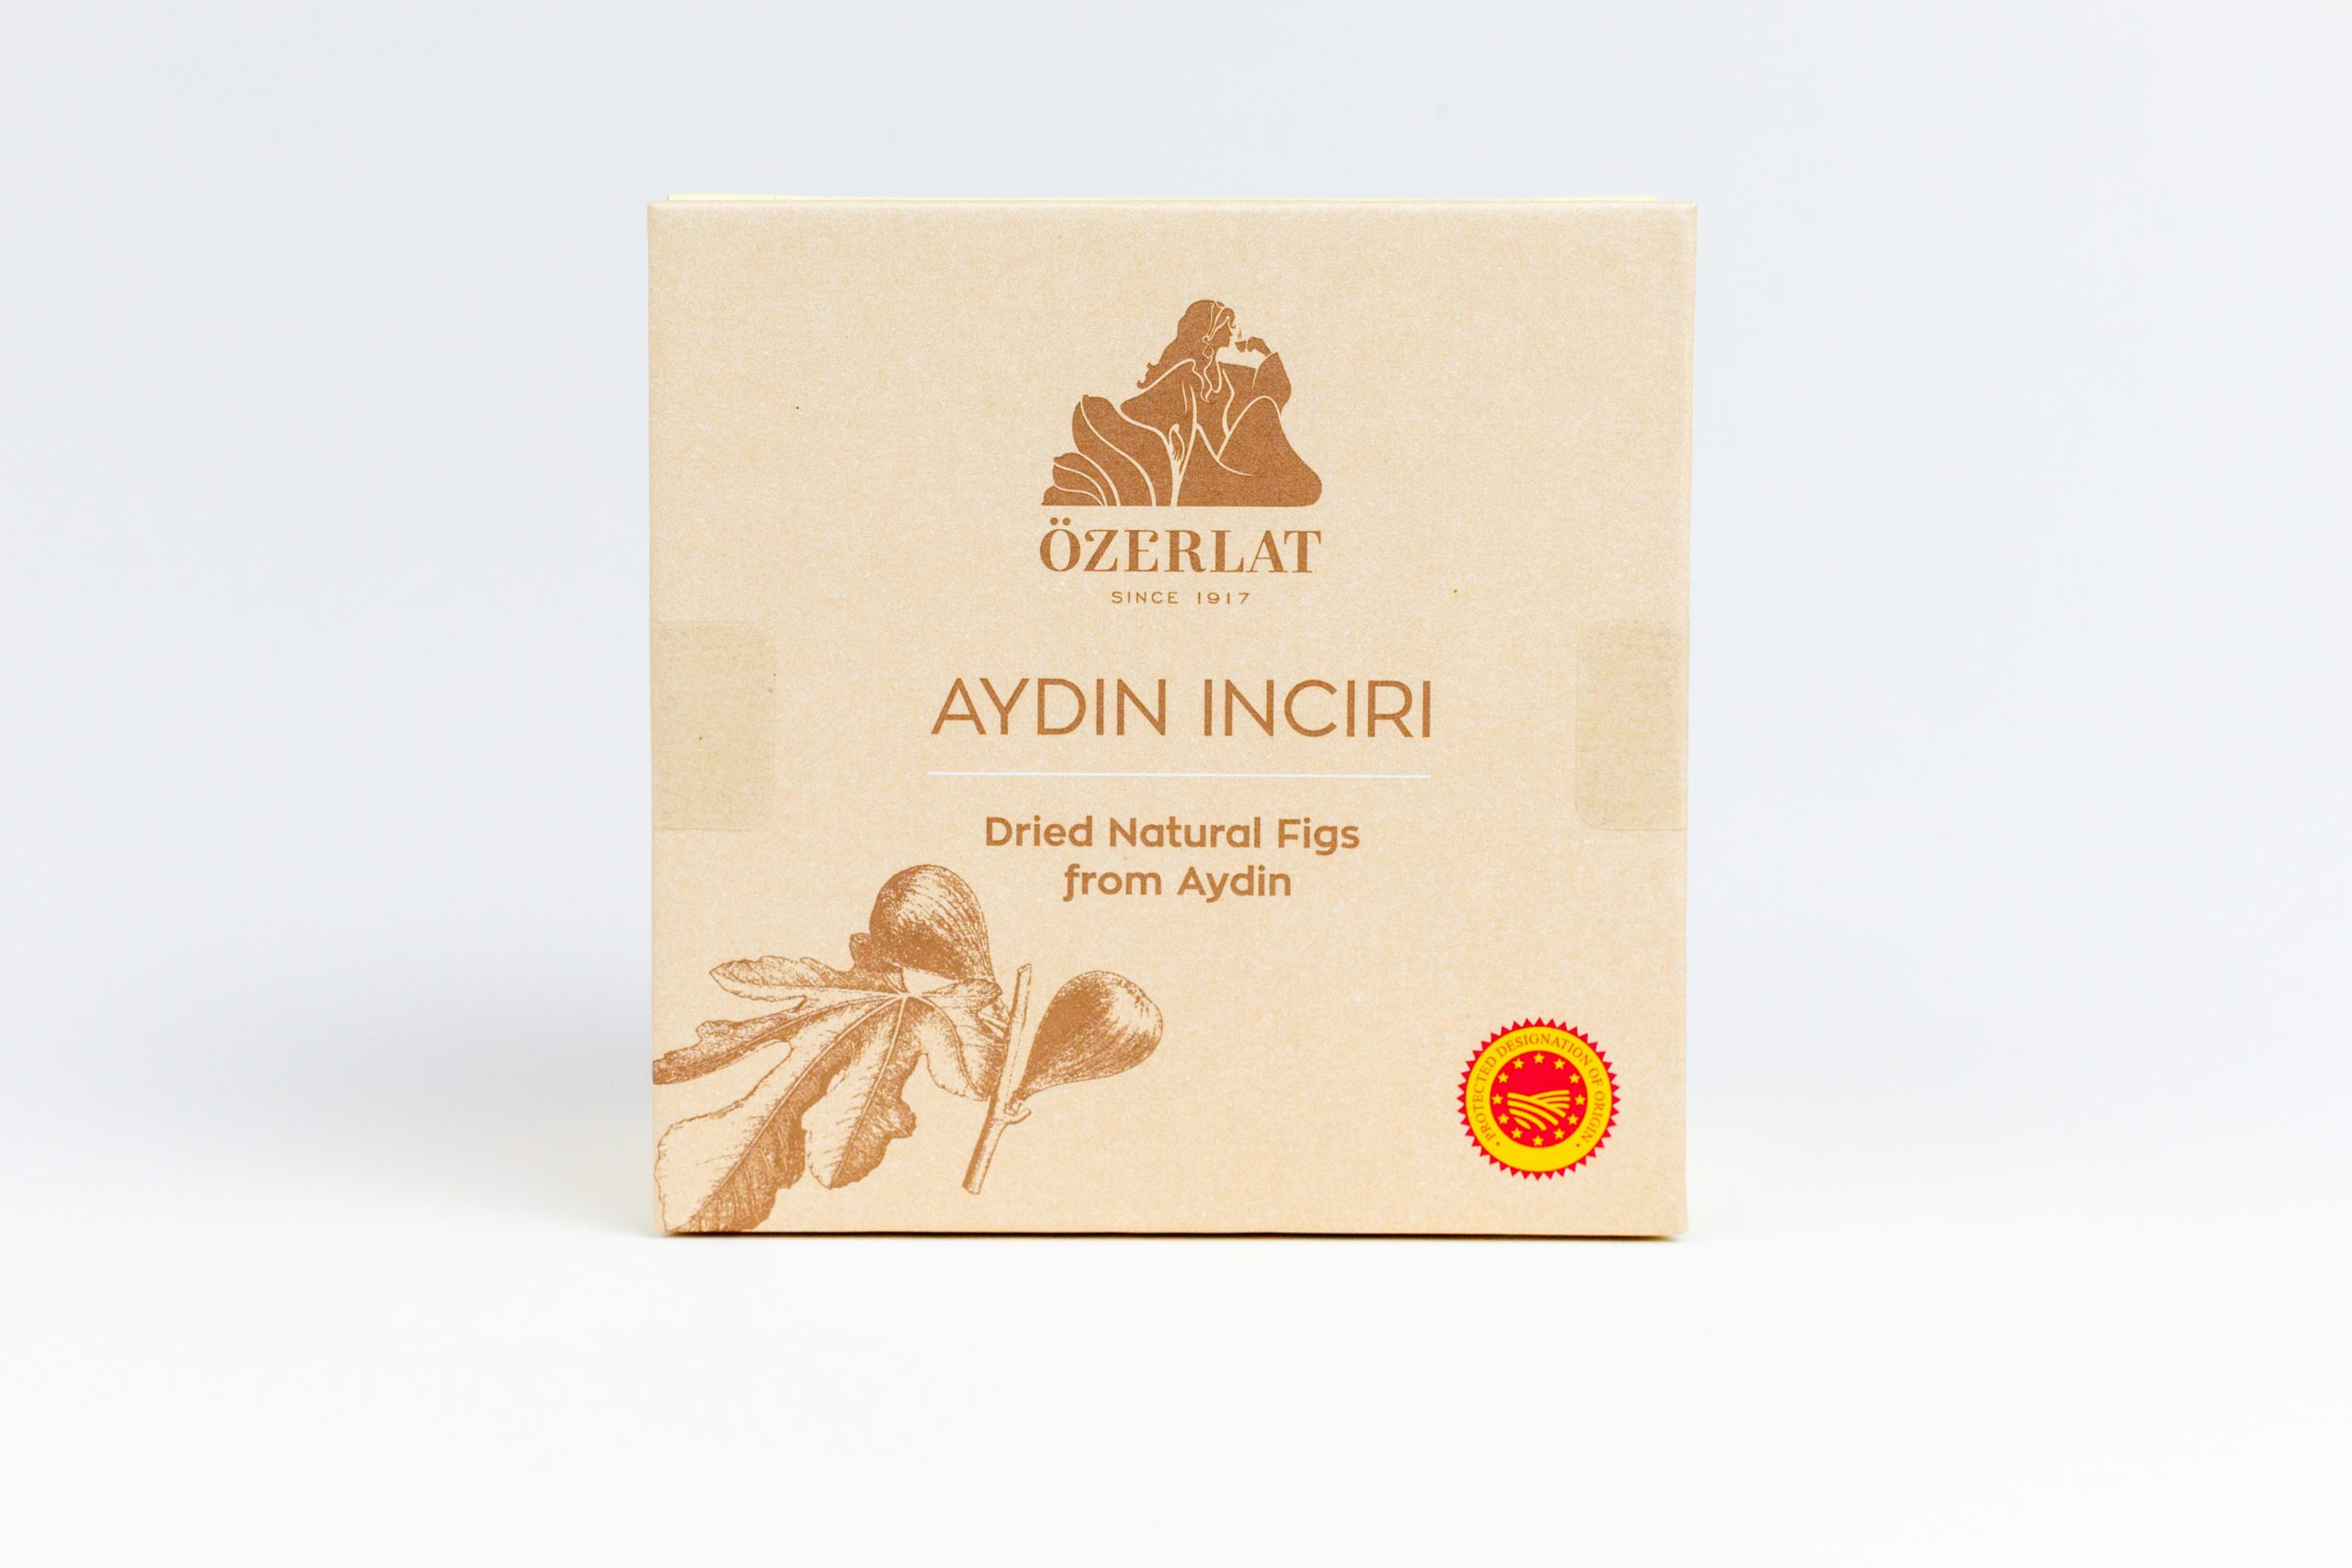 010Y7986 scaled - OZERLAT AYDIN INCIRI - NATURAL DRIED FIGS